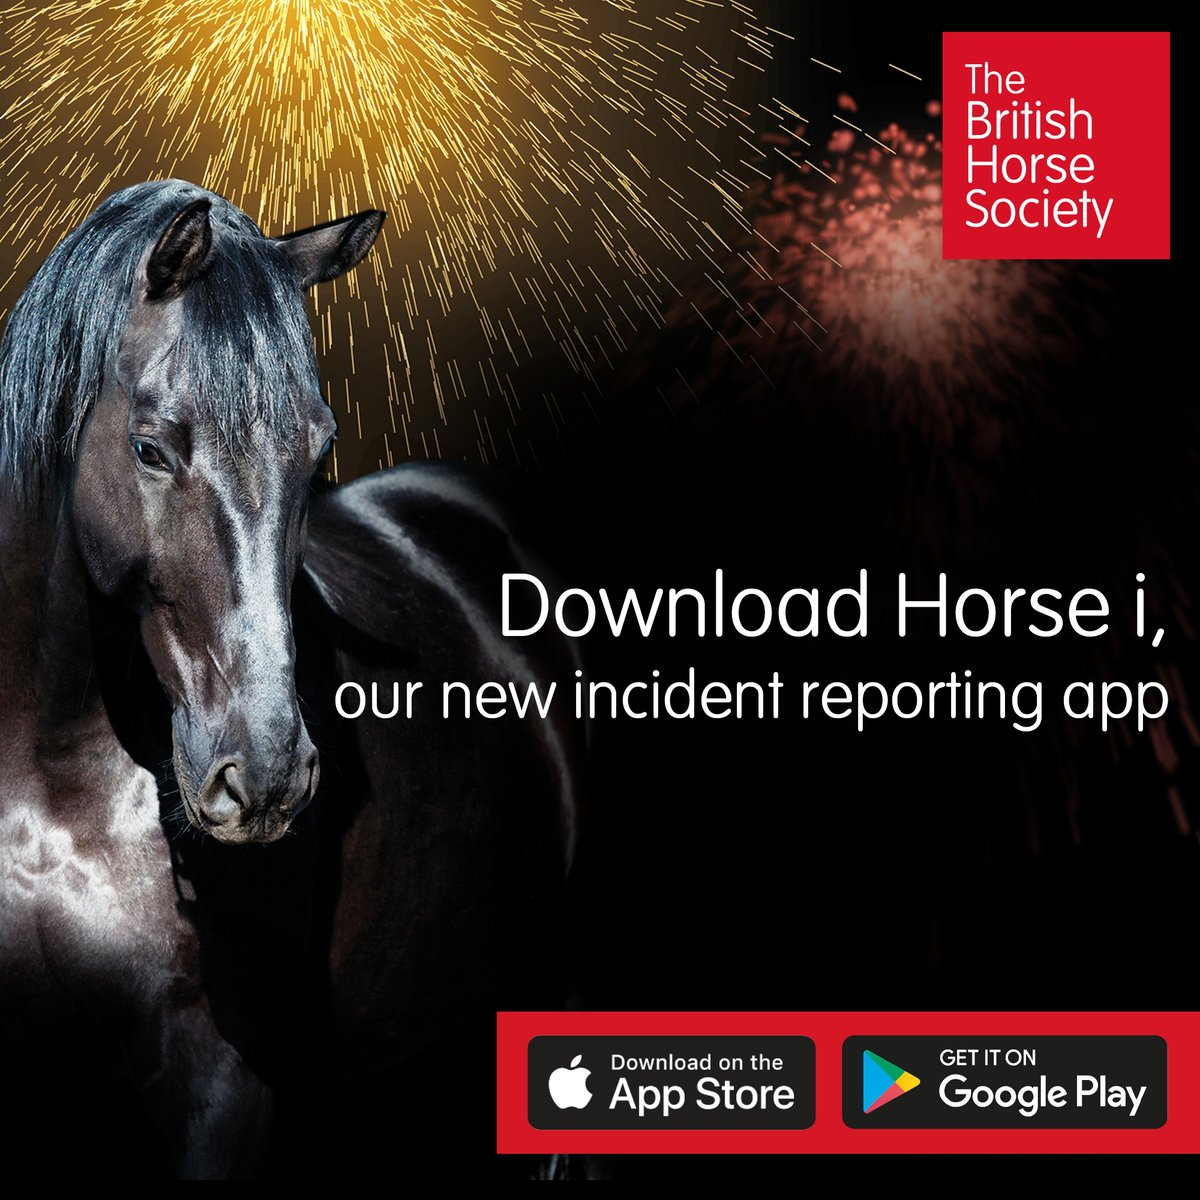 We have help and advice for equestrians during fireworks season in the link. If you're an equestrian and you've not downloaded our incident reporting app yet, look on the app store or google play under 'Horse i' and download today. Pls RT bhs.org.uk/advice-and-inf…